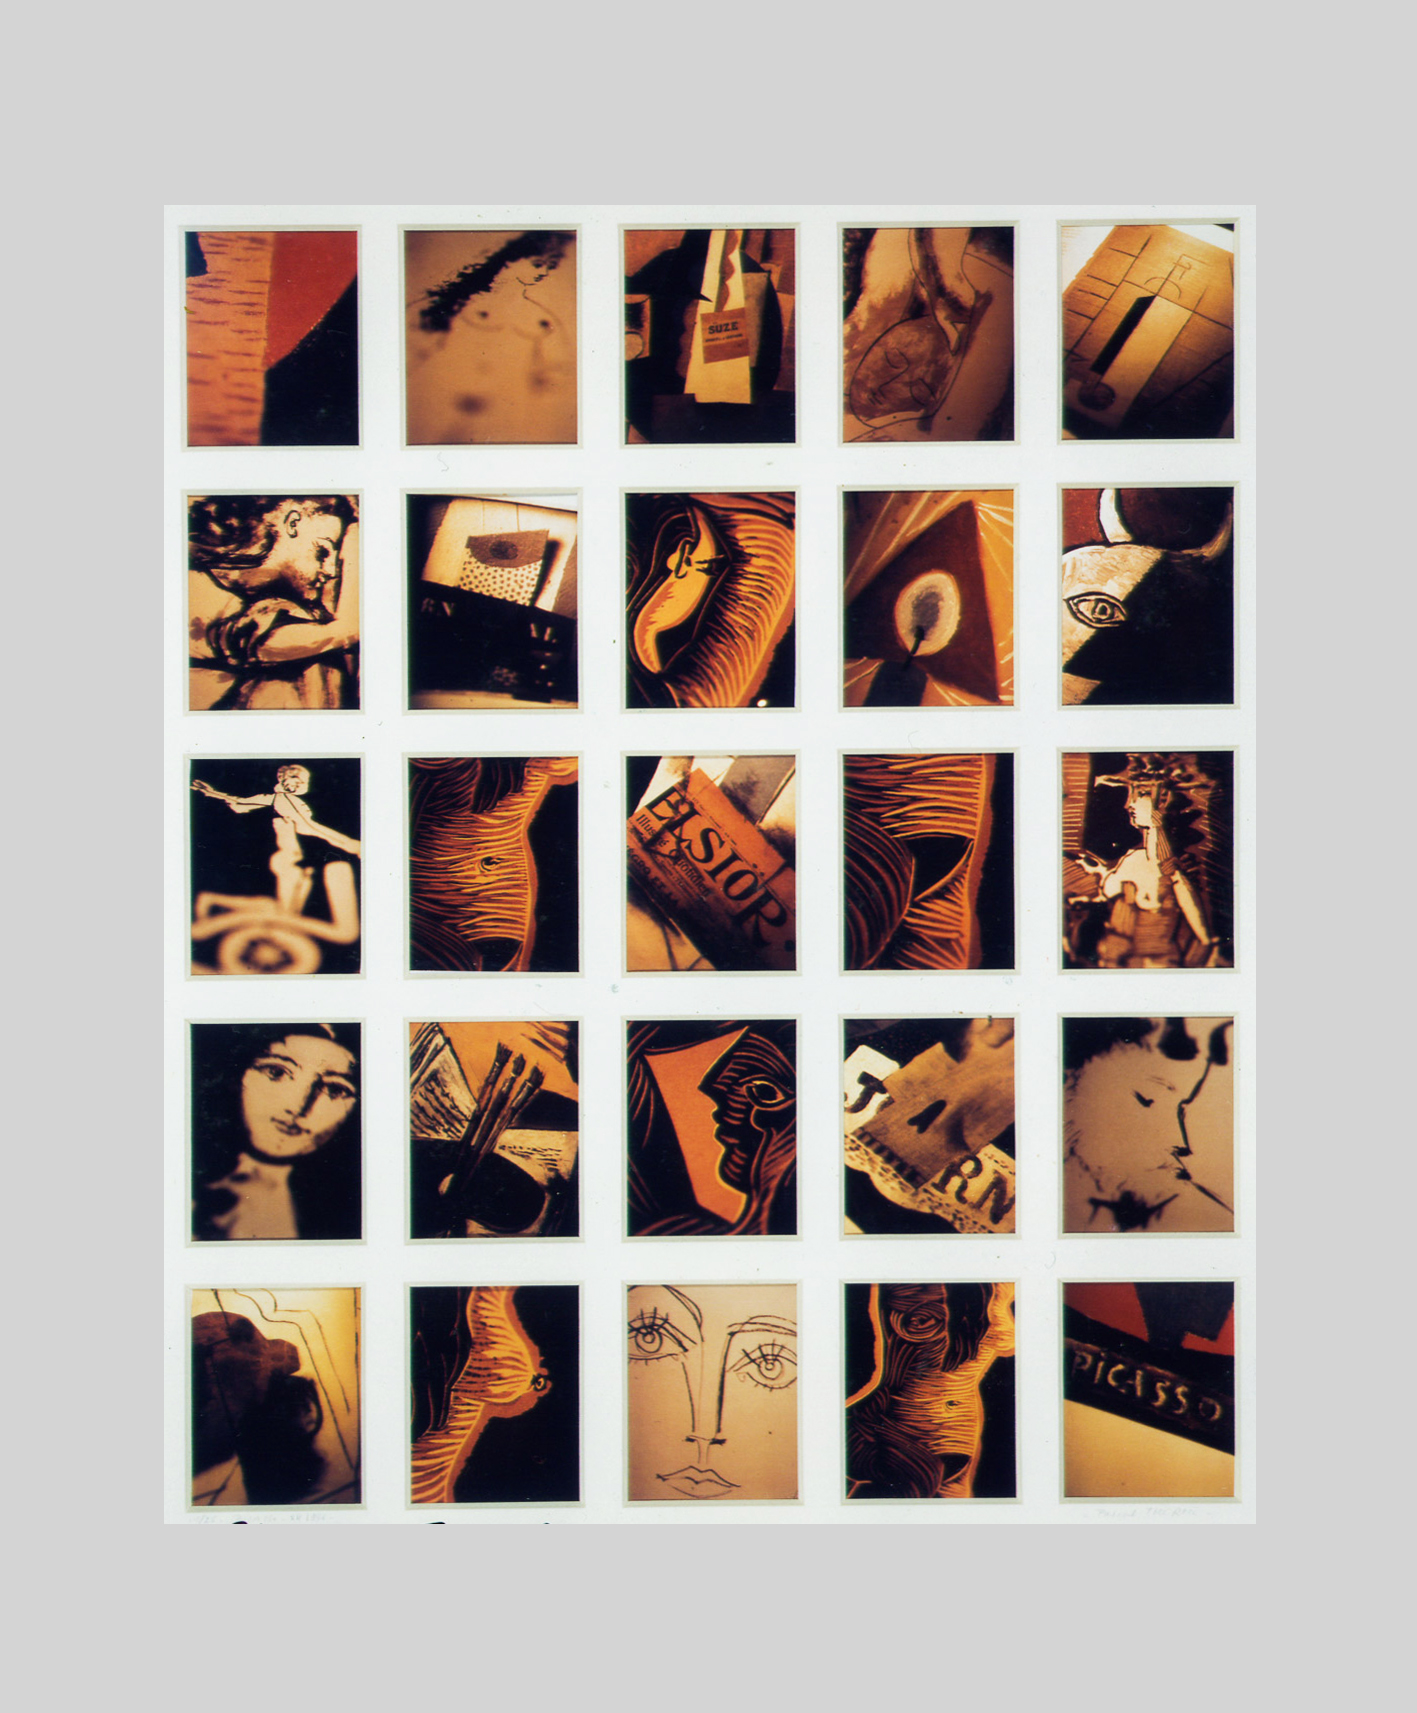 PICASSO JOURNAL